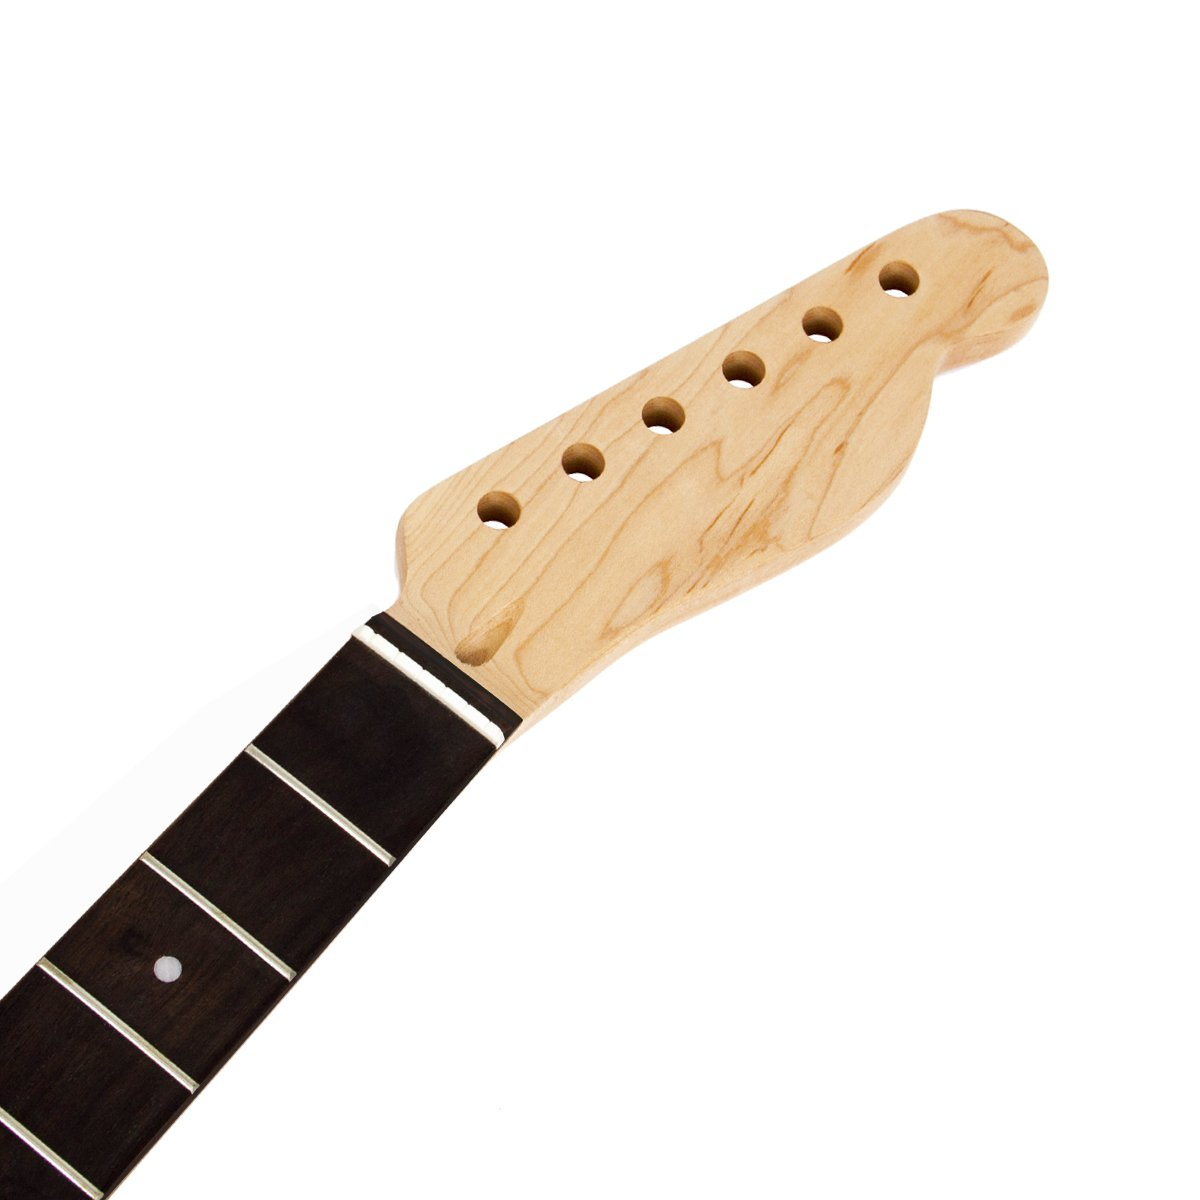 Matt style Finished Electric Guitar Neck 22 Frets Rosewood Fretboard Replacement wholesale 4pcs by Kmise (Image #5)